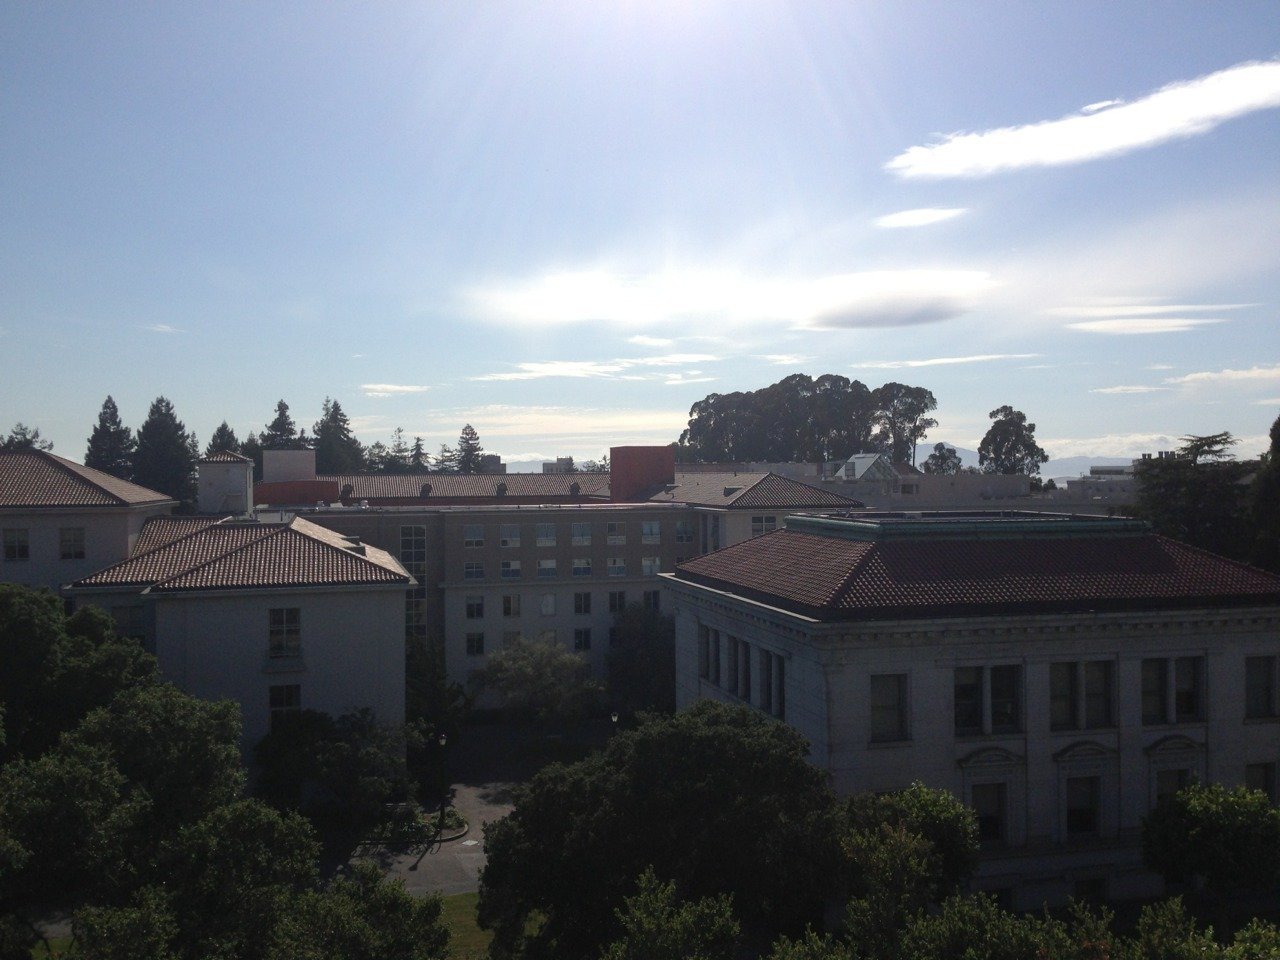 Berkeley summer! You lovely thing! Goodbye sophomore year. You treated me so very well.